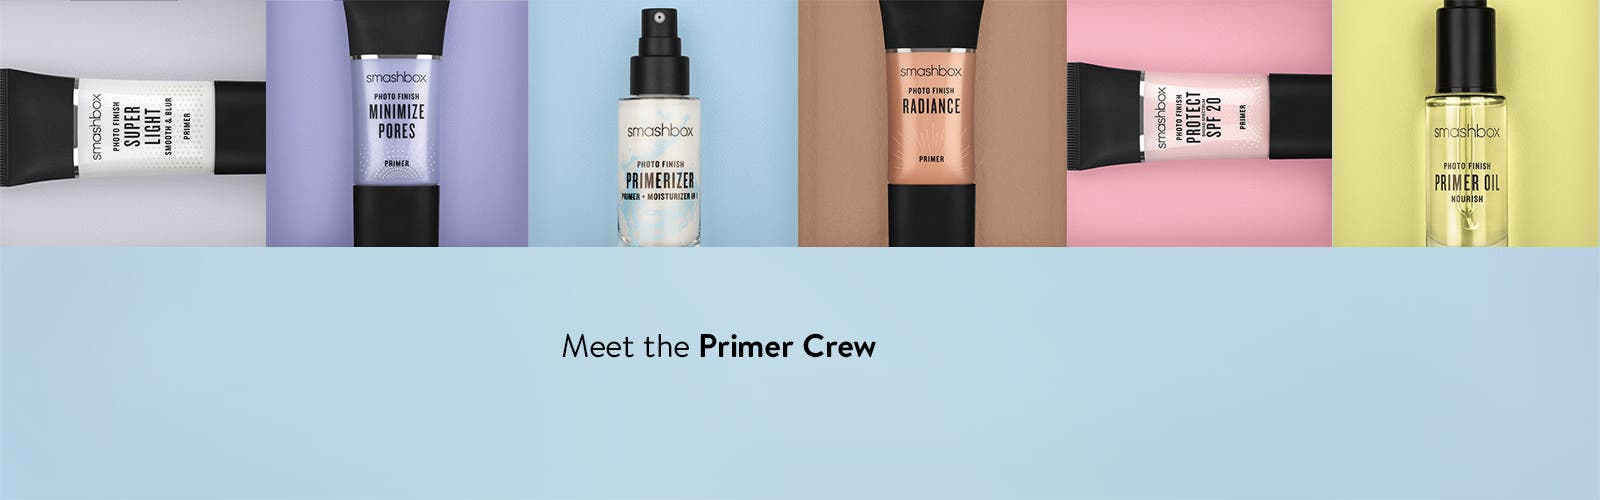 Meet the Smashbox primer crew.